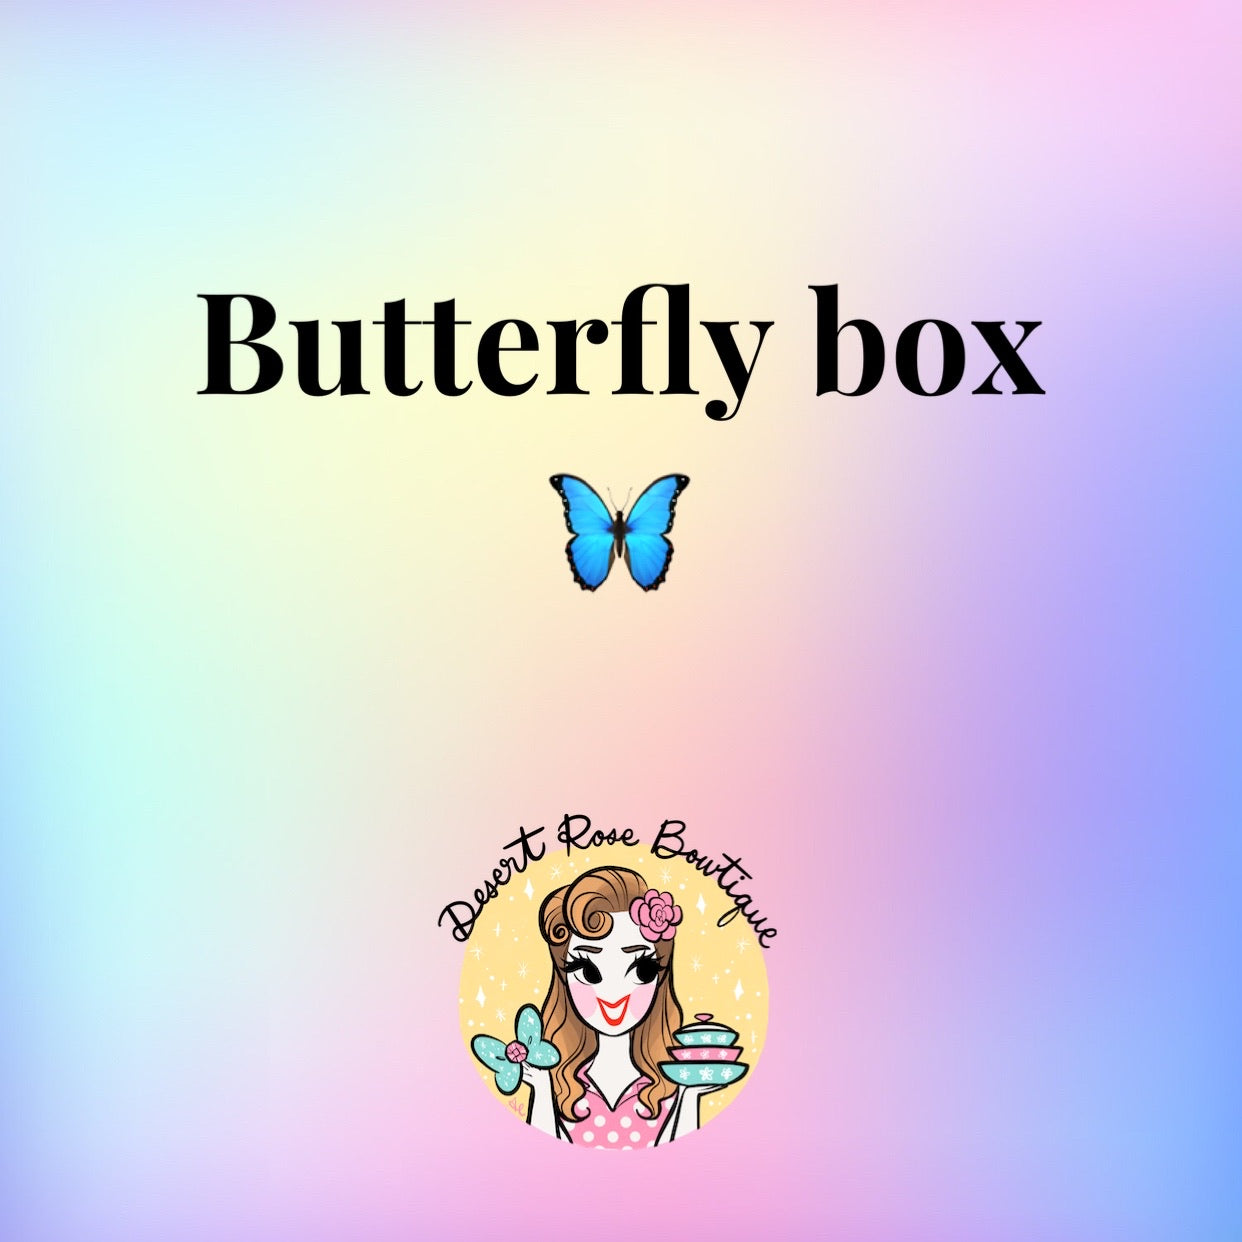 Surprise Butterfly box